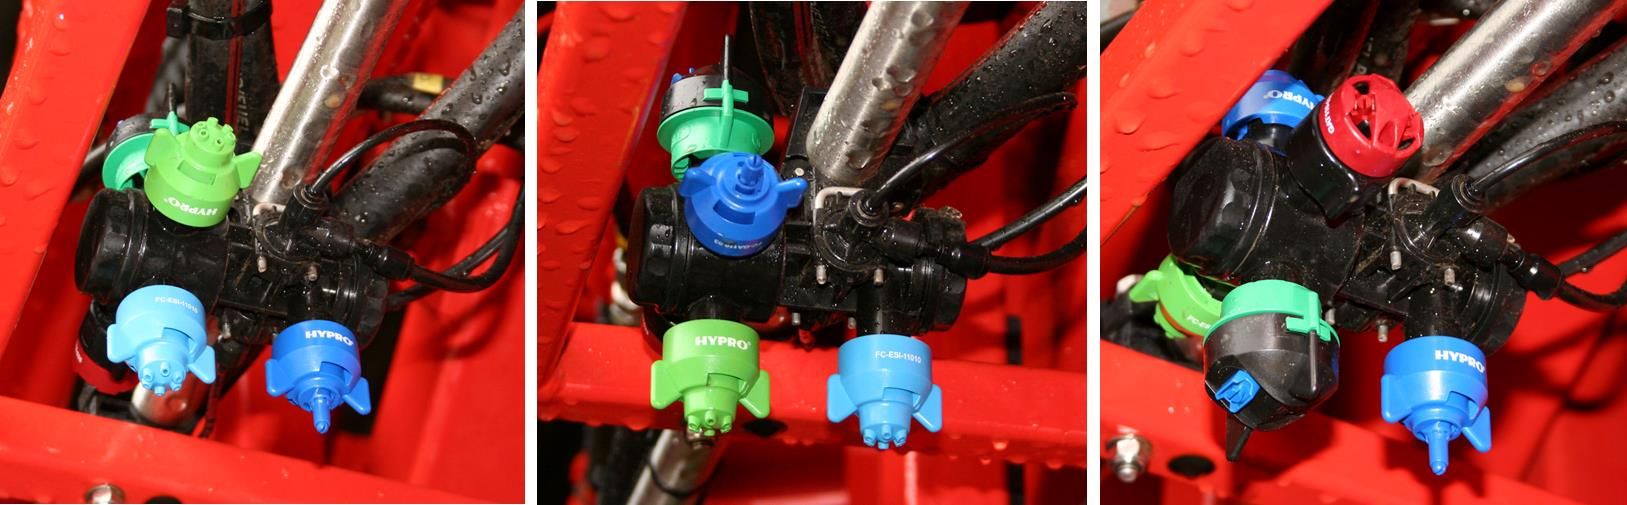 The Hypro Duo React body with different nozzle combinations including ESI six-stream fertiliser nozzle, Guardian Air low-drift and VPTech angled flat fan.